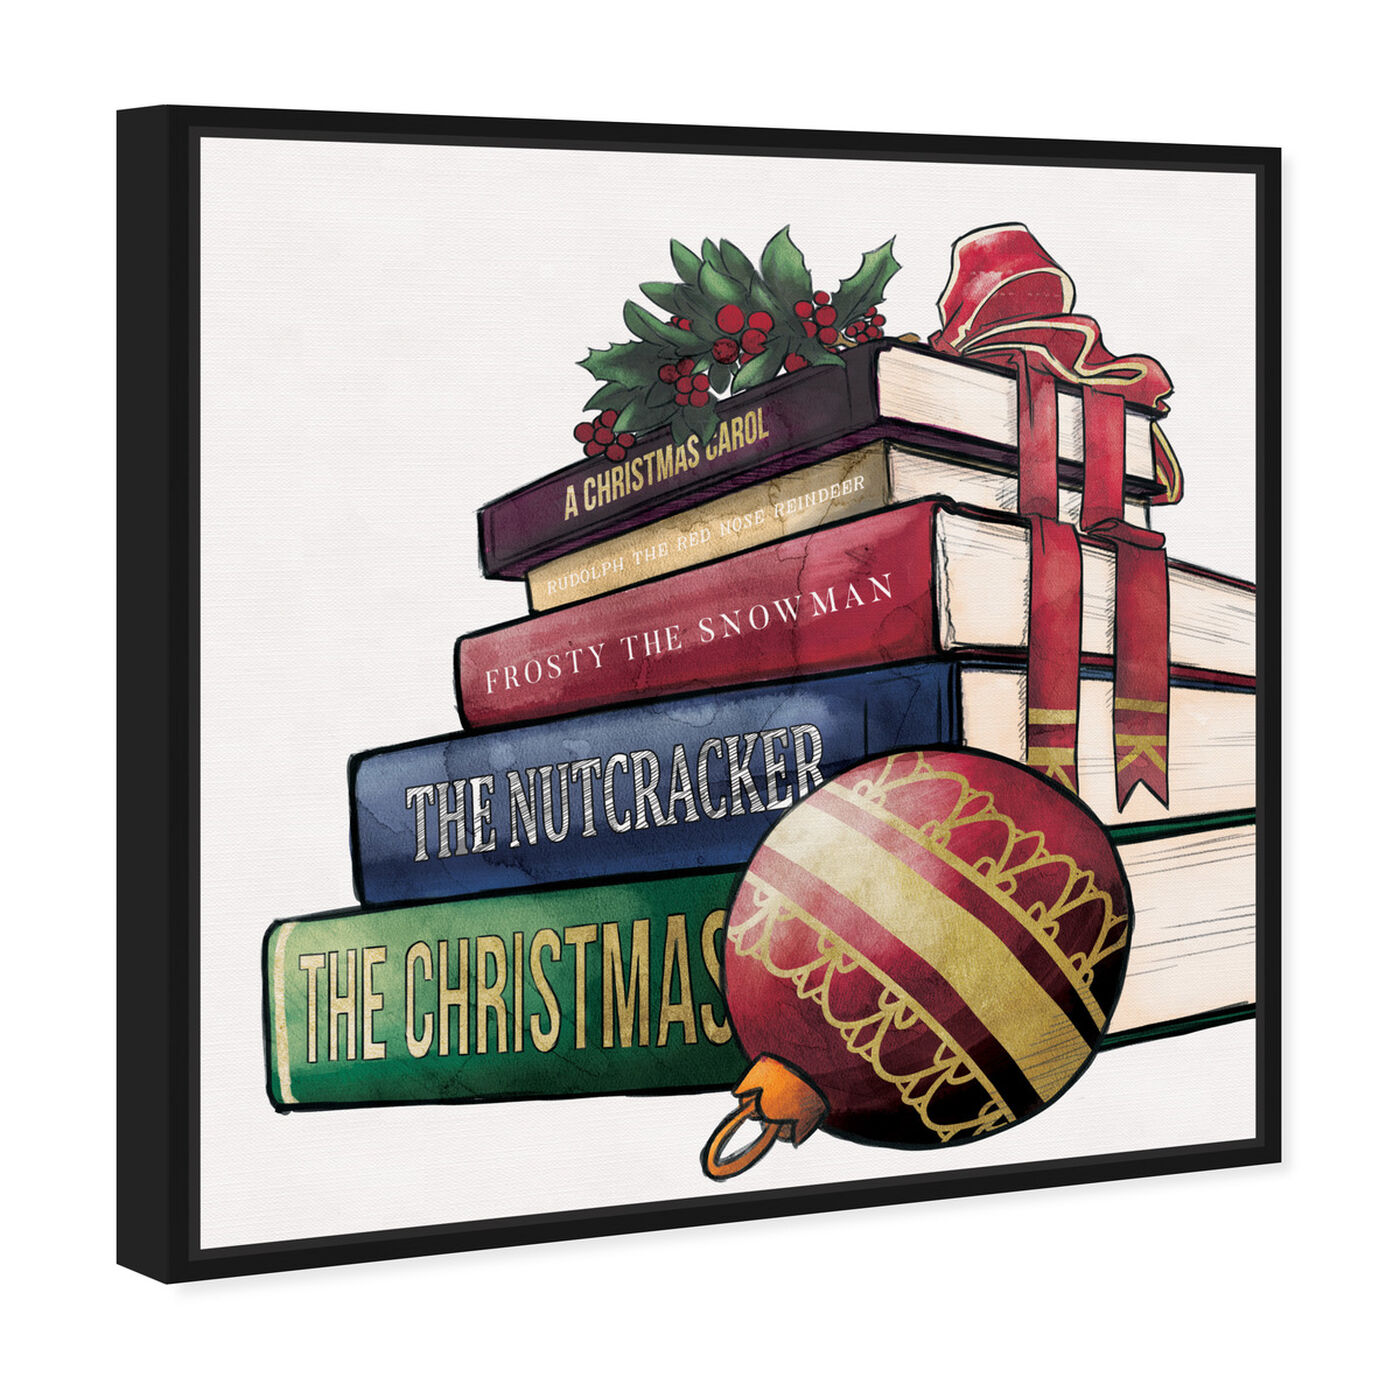 Angled view of Holiday tales featuring holiday and seasonal and holidays art.